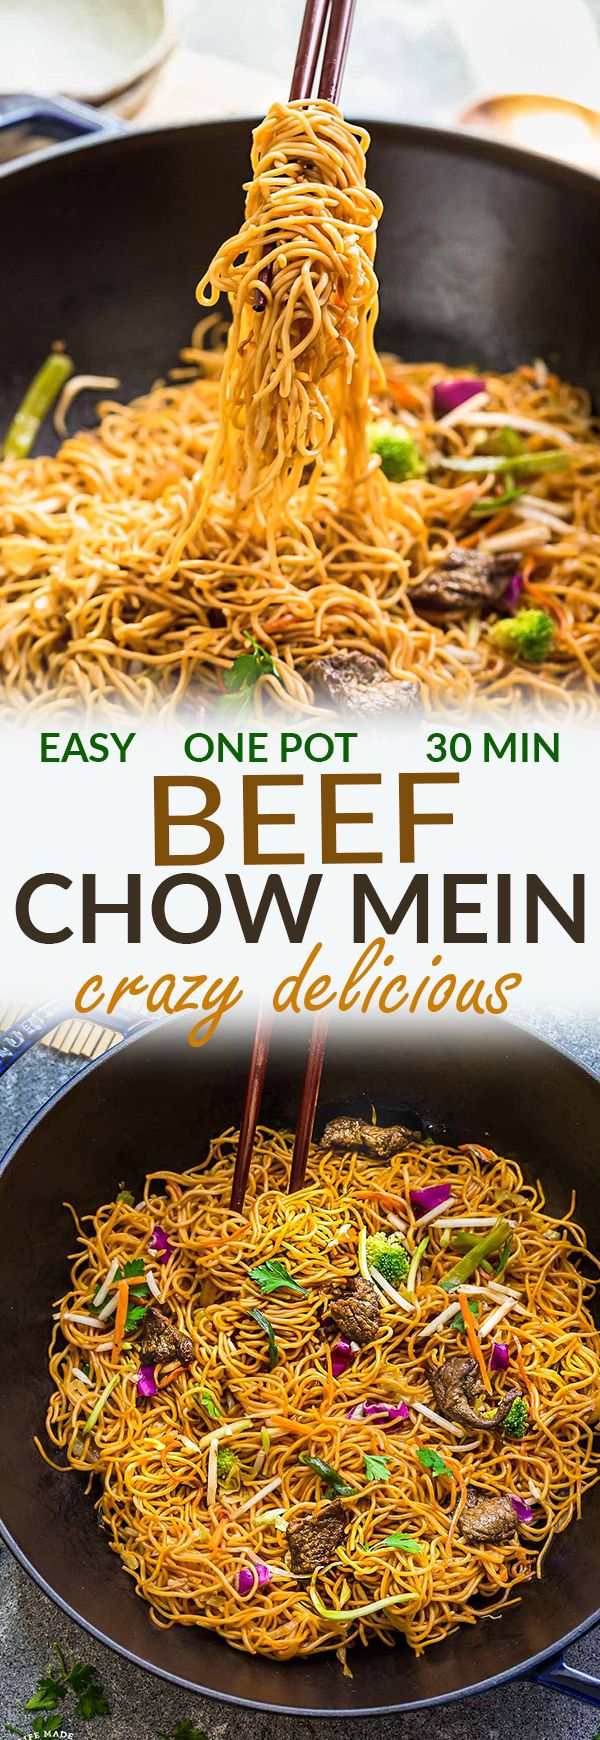 Beef Chow Mein is the perfect easy weeknight meal! Best of all, it comes together in under 20 minutes with in just one pot! Forget calling that local Chinese takeout restaurant for lo mein or ramen, this delicious recipe is so much better with authentic flavors. Seriously the best!! Plus makes great leftovers or make a batch for Sunday meal prep for school and work lunches! Plus step by step recipe video.